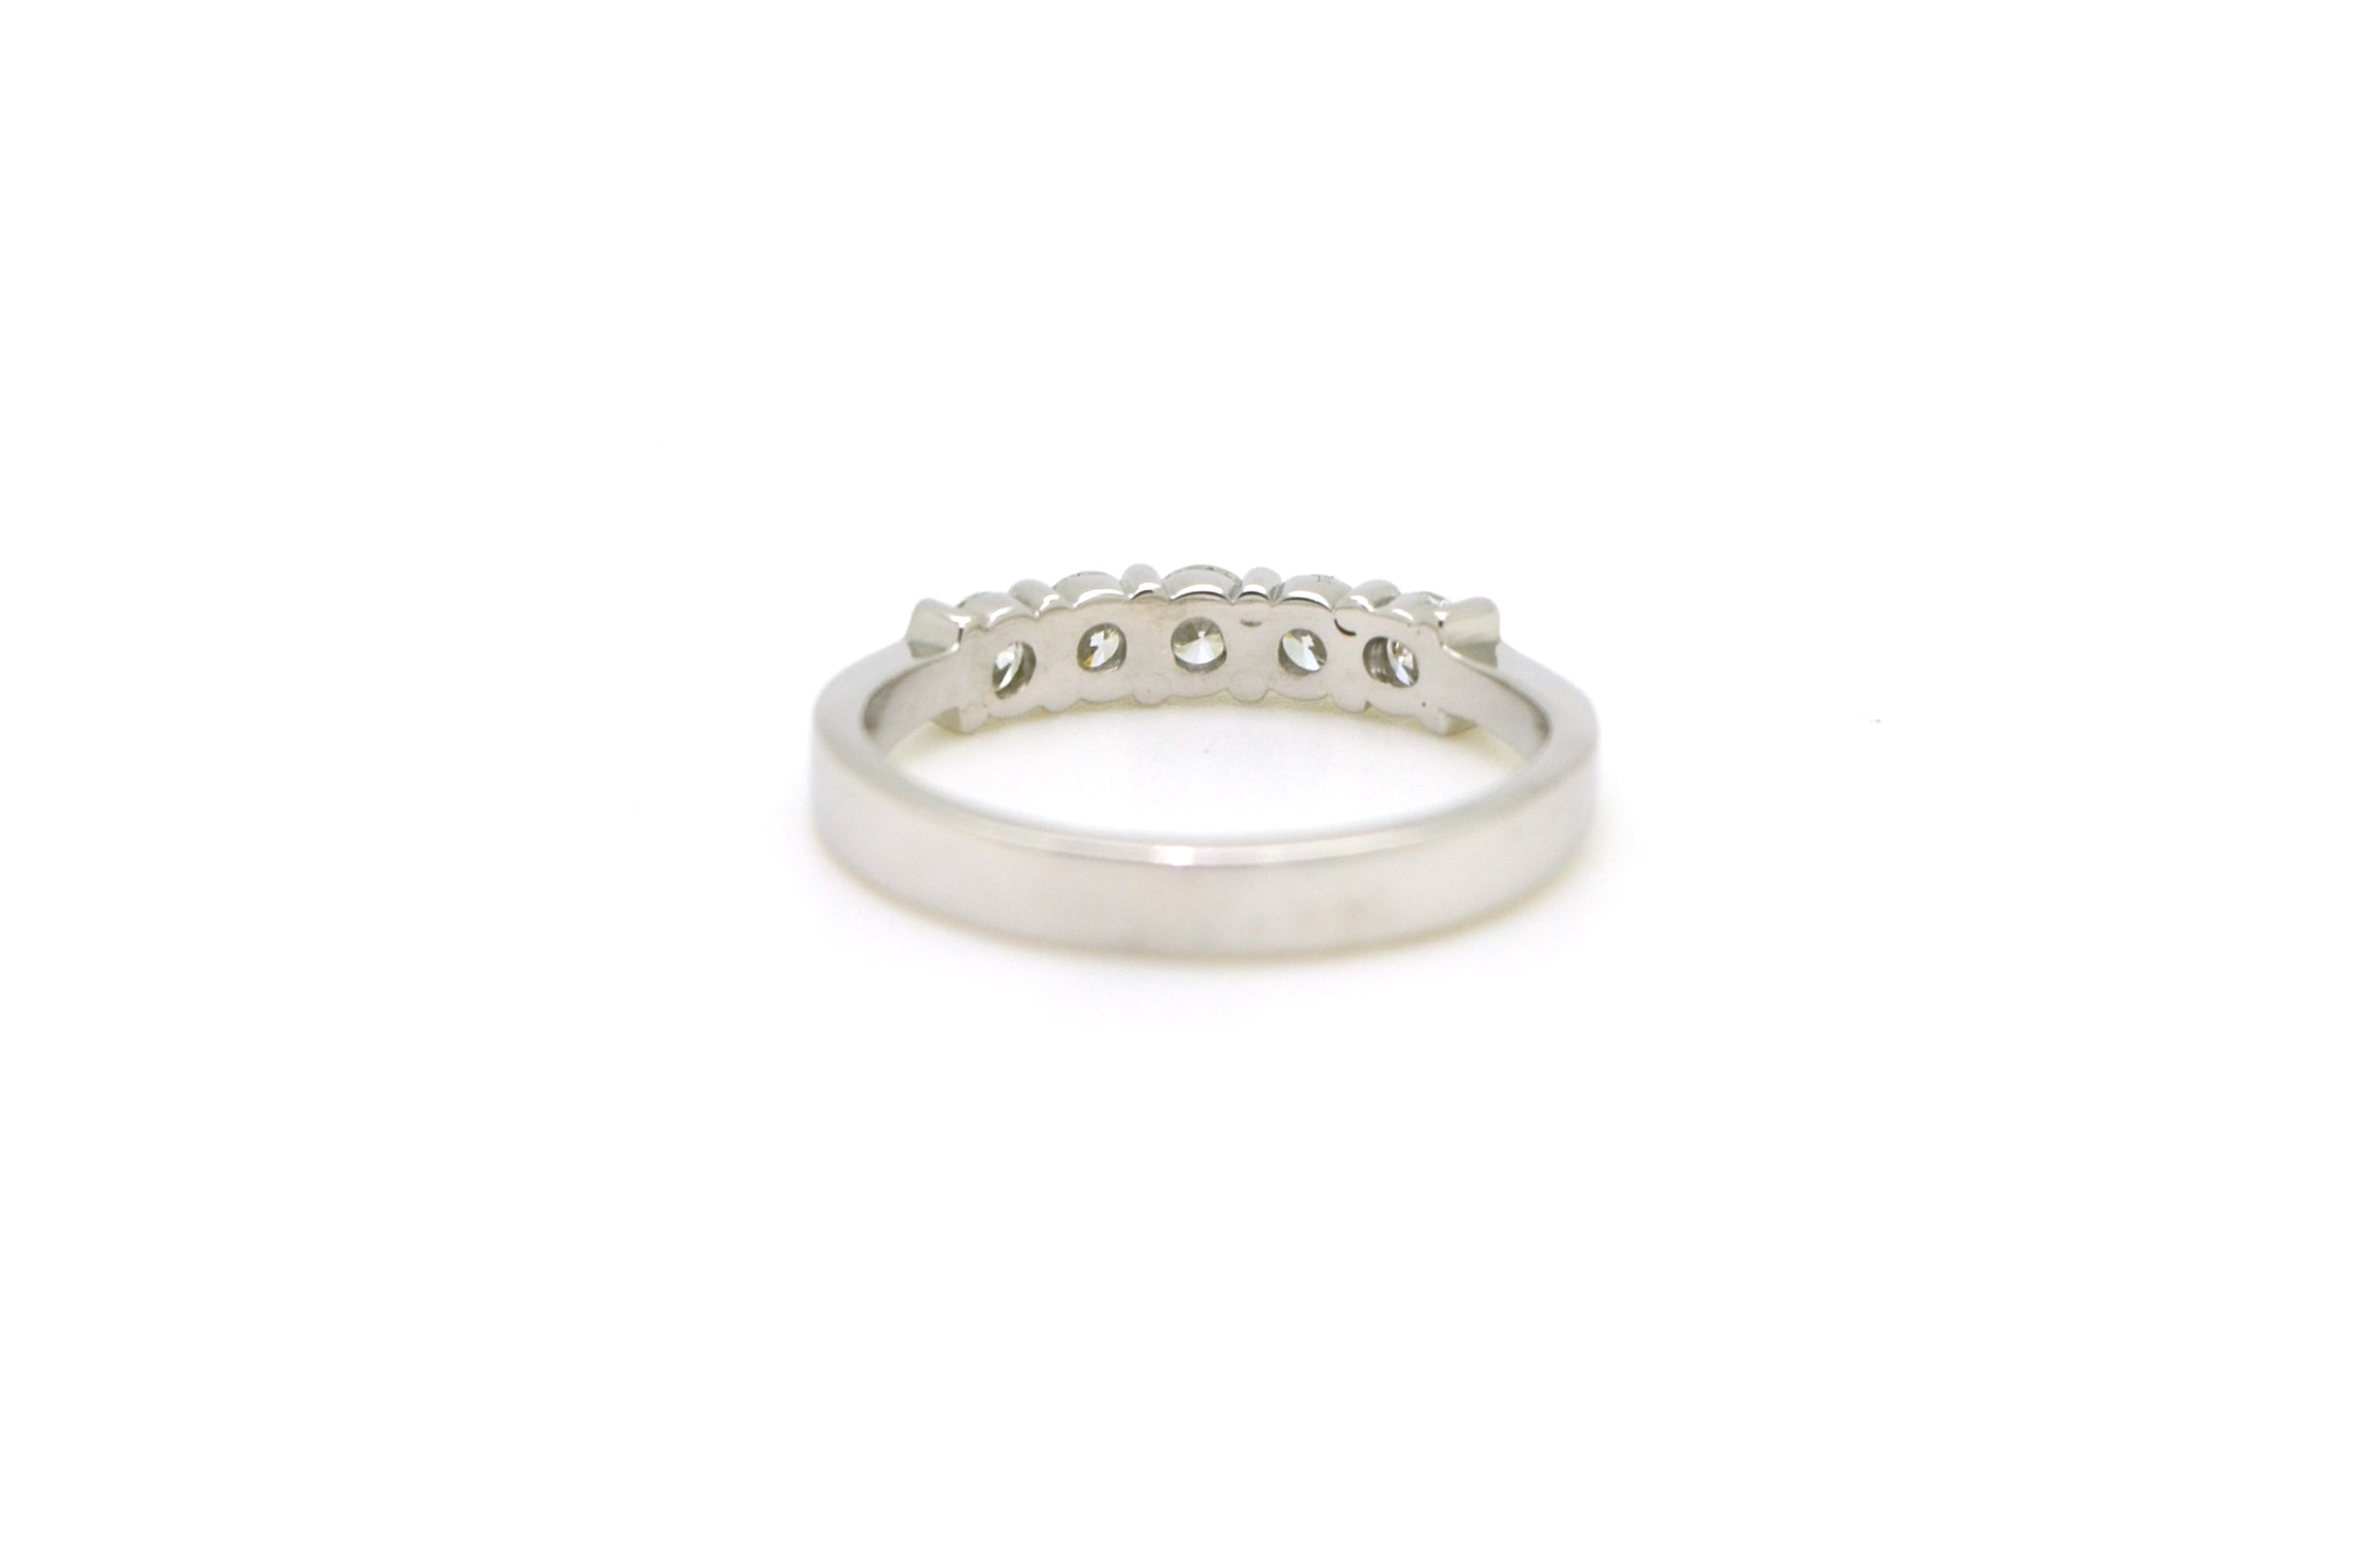 Platinum Prong-Set 5-Stone Round Diamond Band Ring - .50 ct. total - Size 6